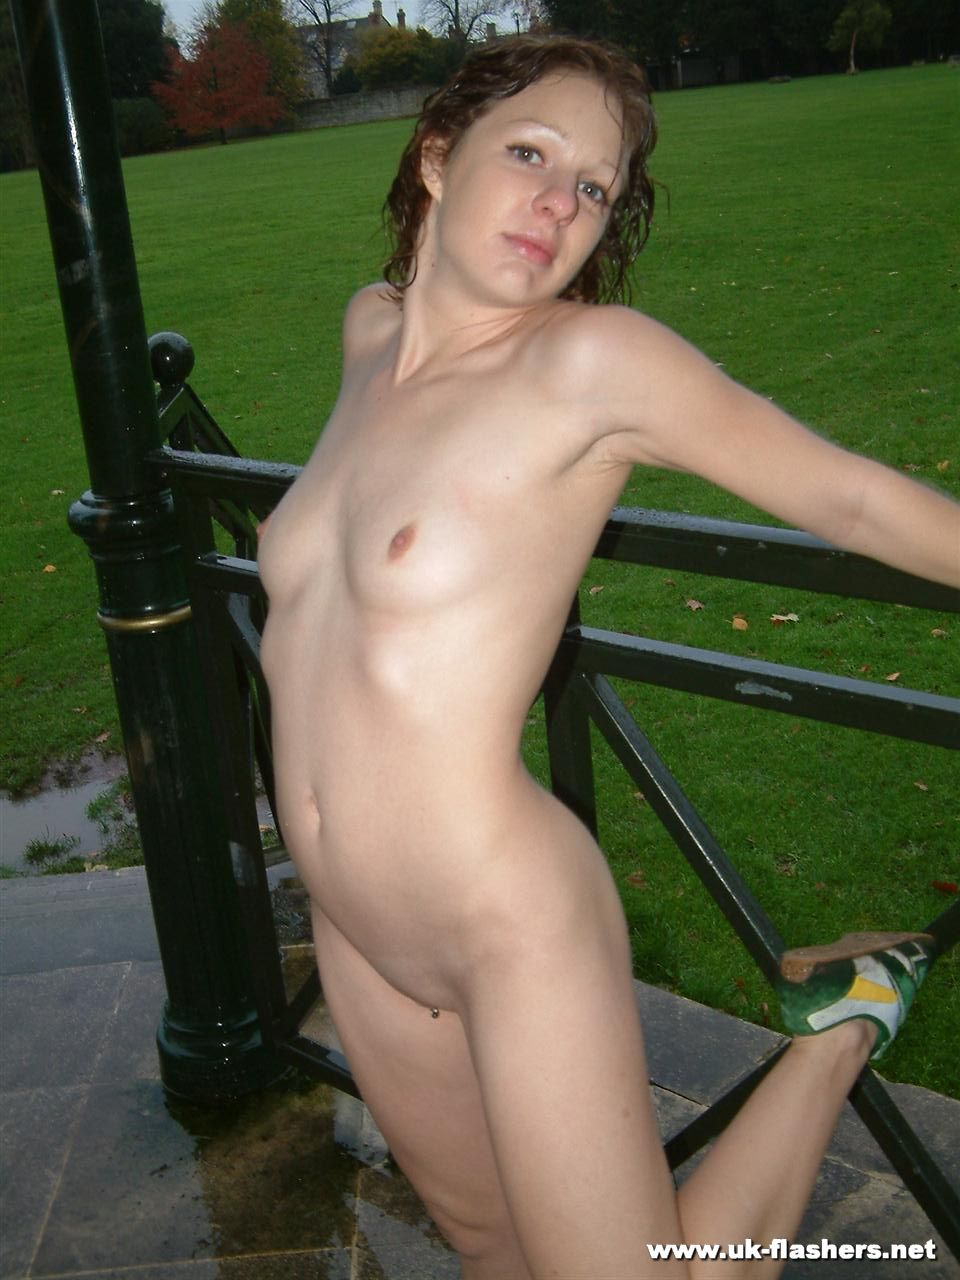 Public nude amateur photo sites